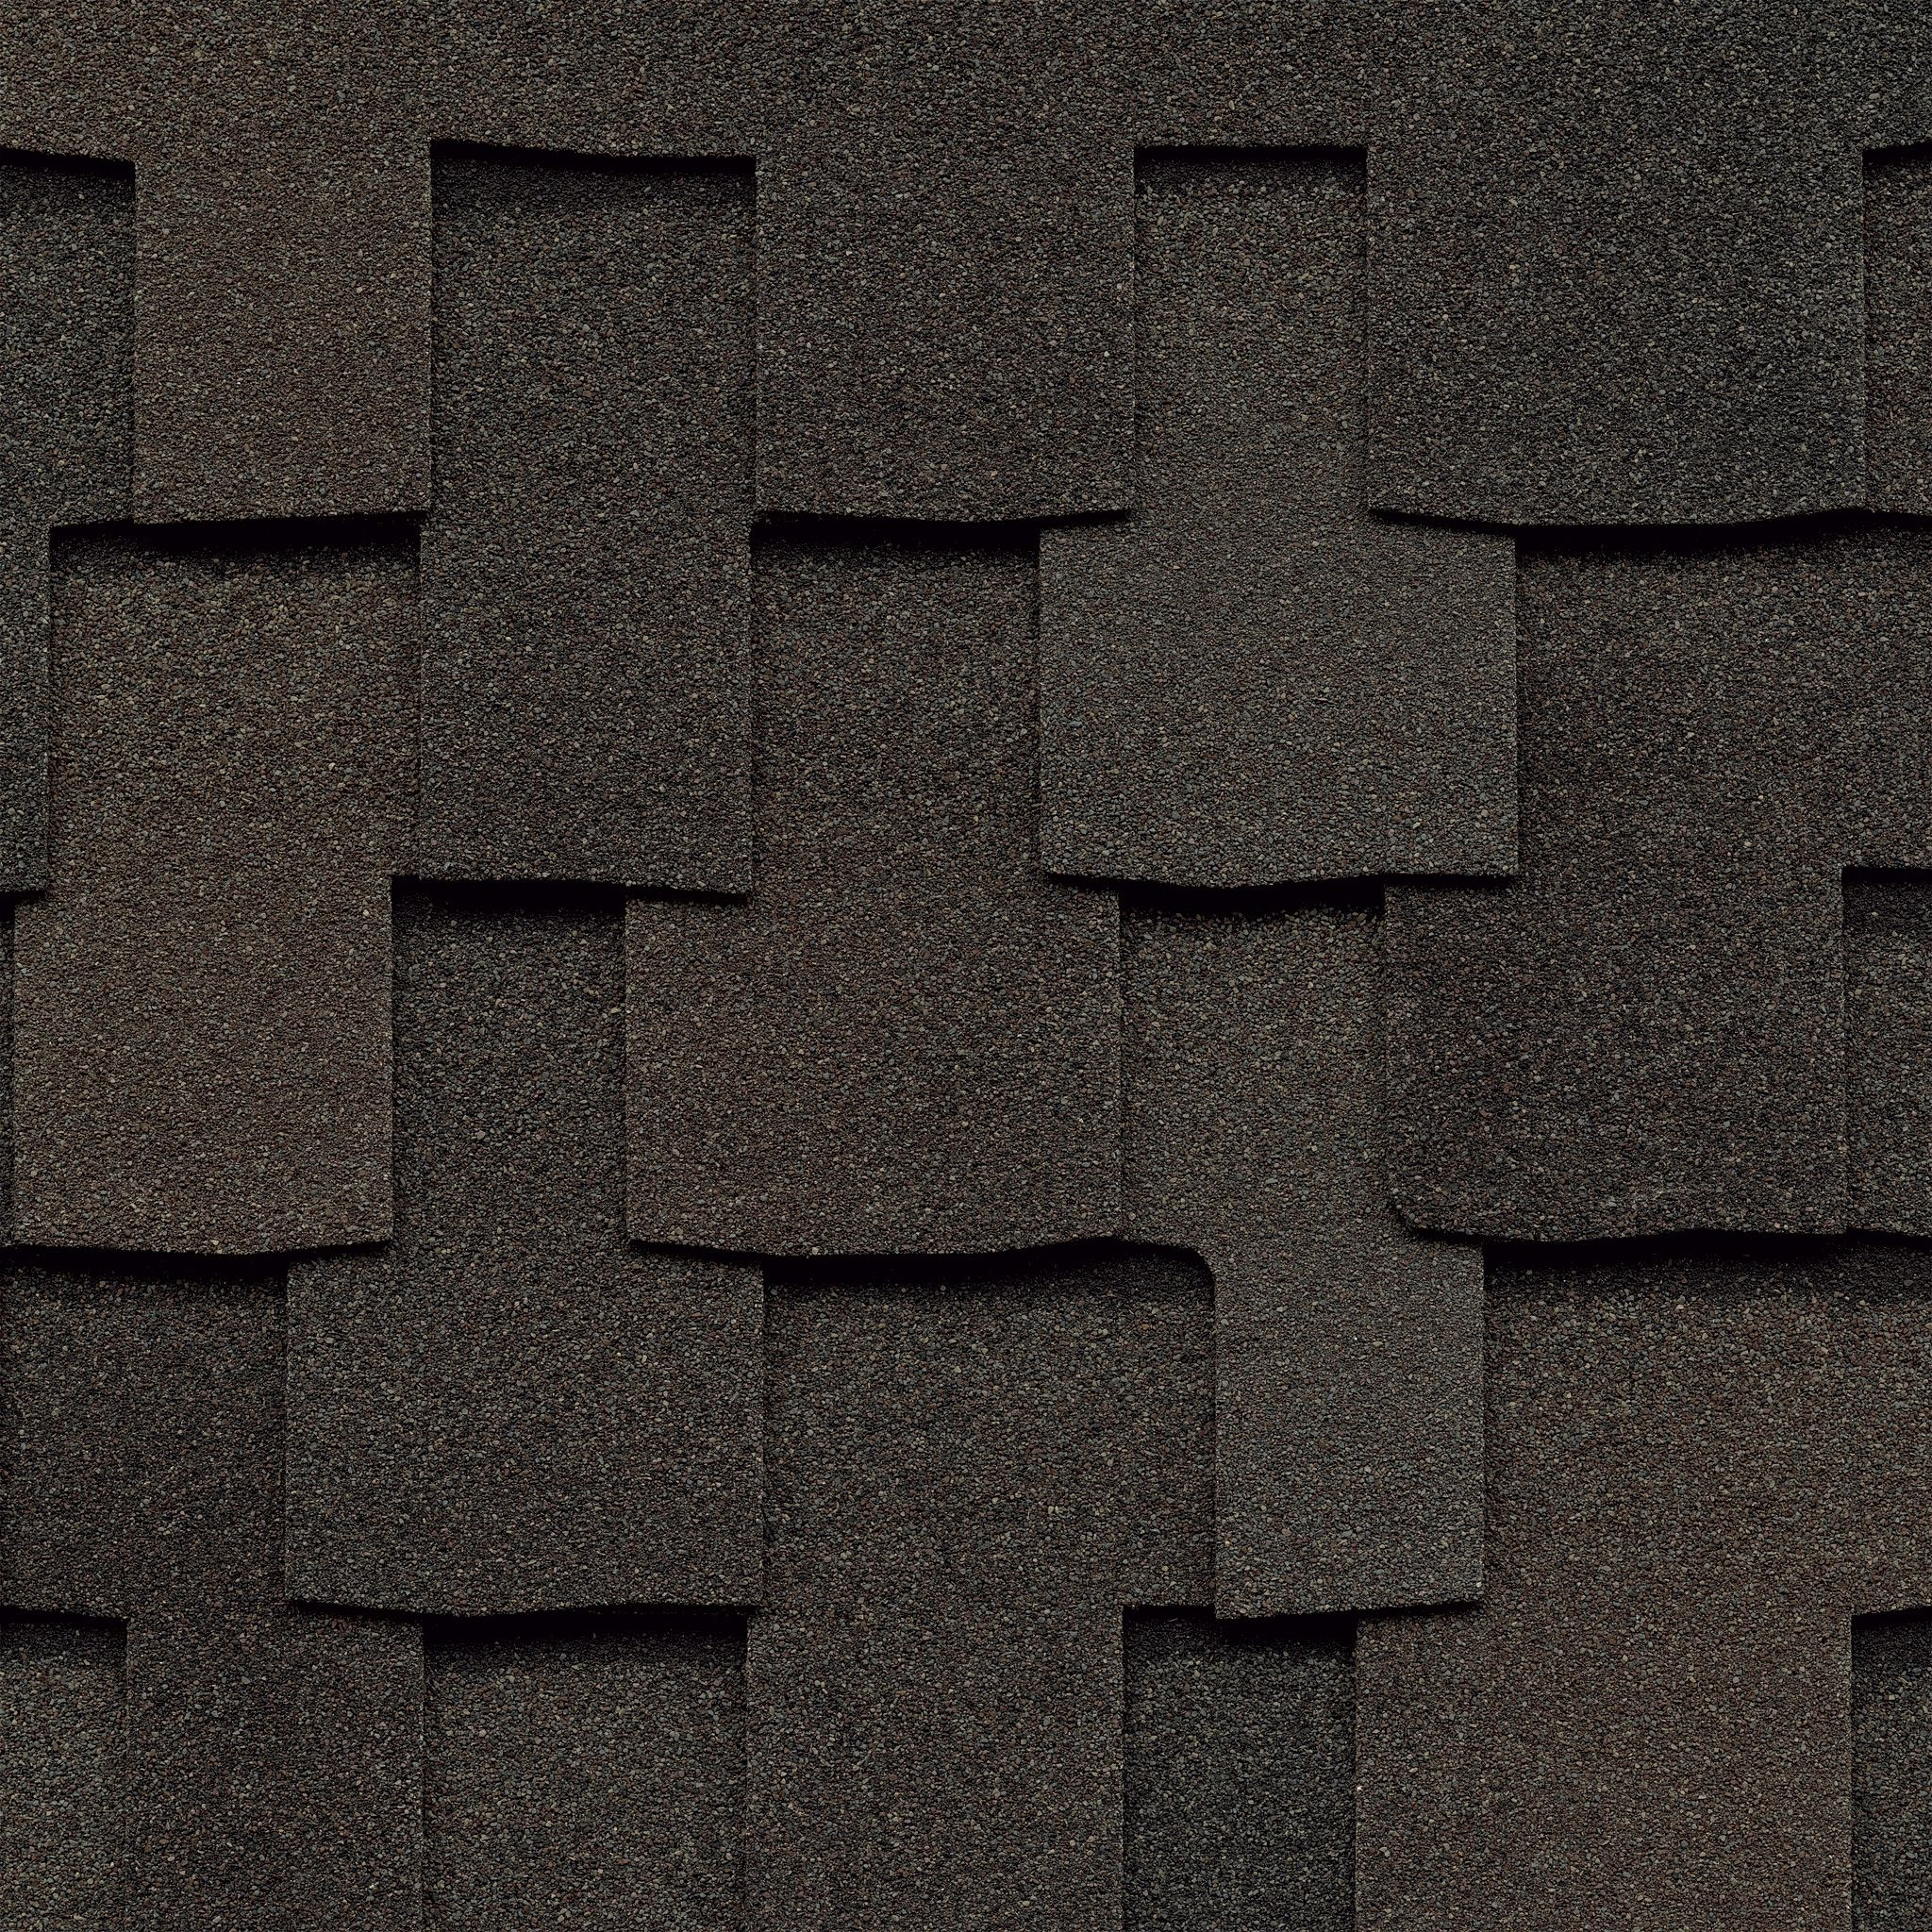 Husky Gray Grand Sequoia Shingle Roof Installation By Brown Roofing In Kansas City Architectural Shingles Roof Roof Architecture Roof Shingles